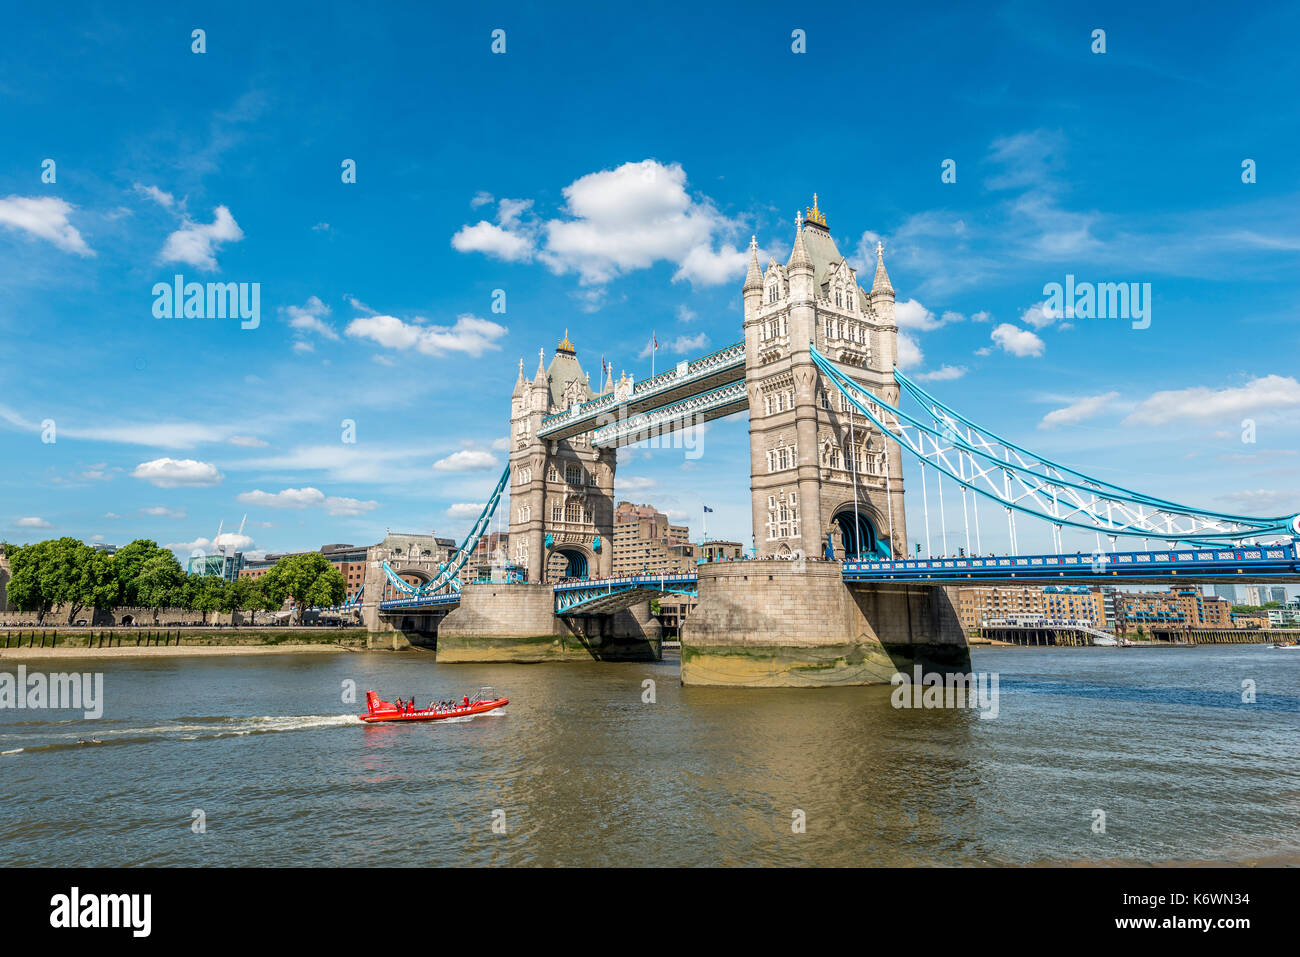 Tower Bridge over the Thames, Southwark, London, England, Great Britain - Stock Image